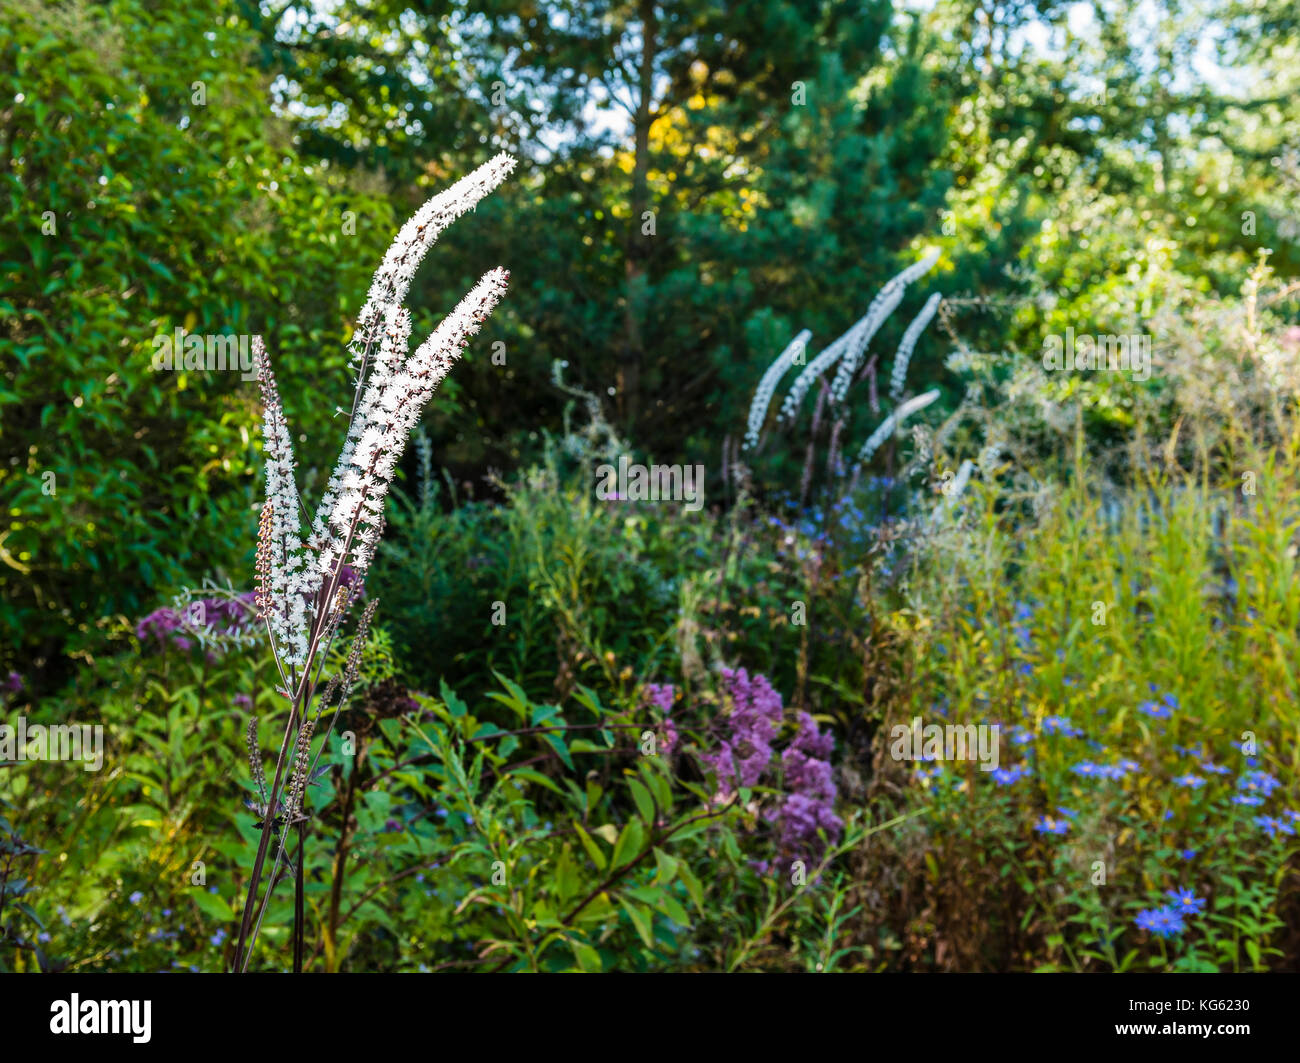 Wildflower meadow garden detail, Le Manoir, Oxfordshire, UK - Stock Image